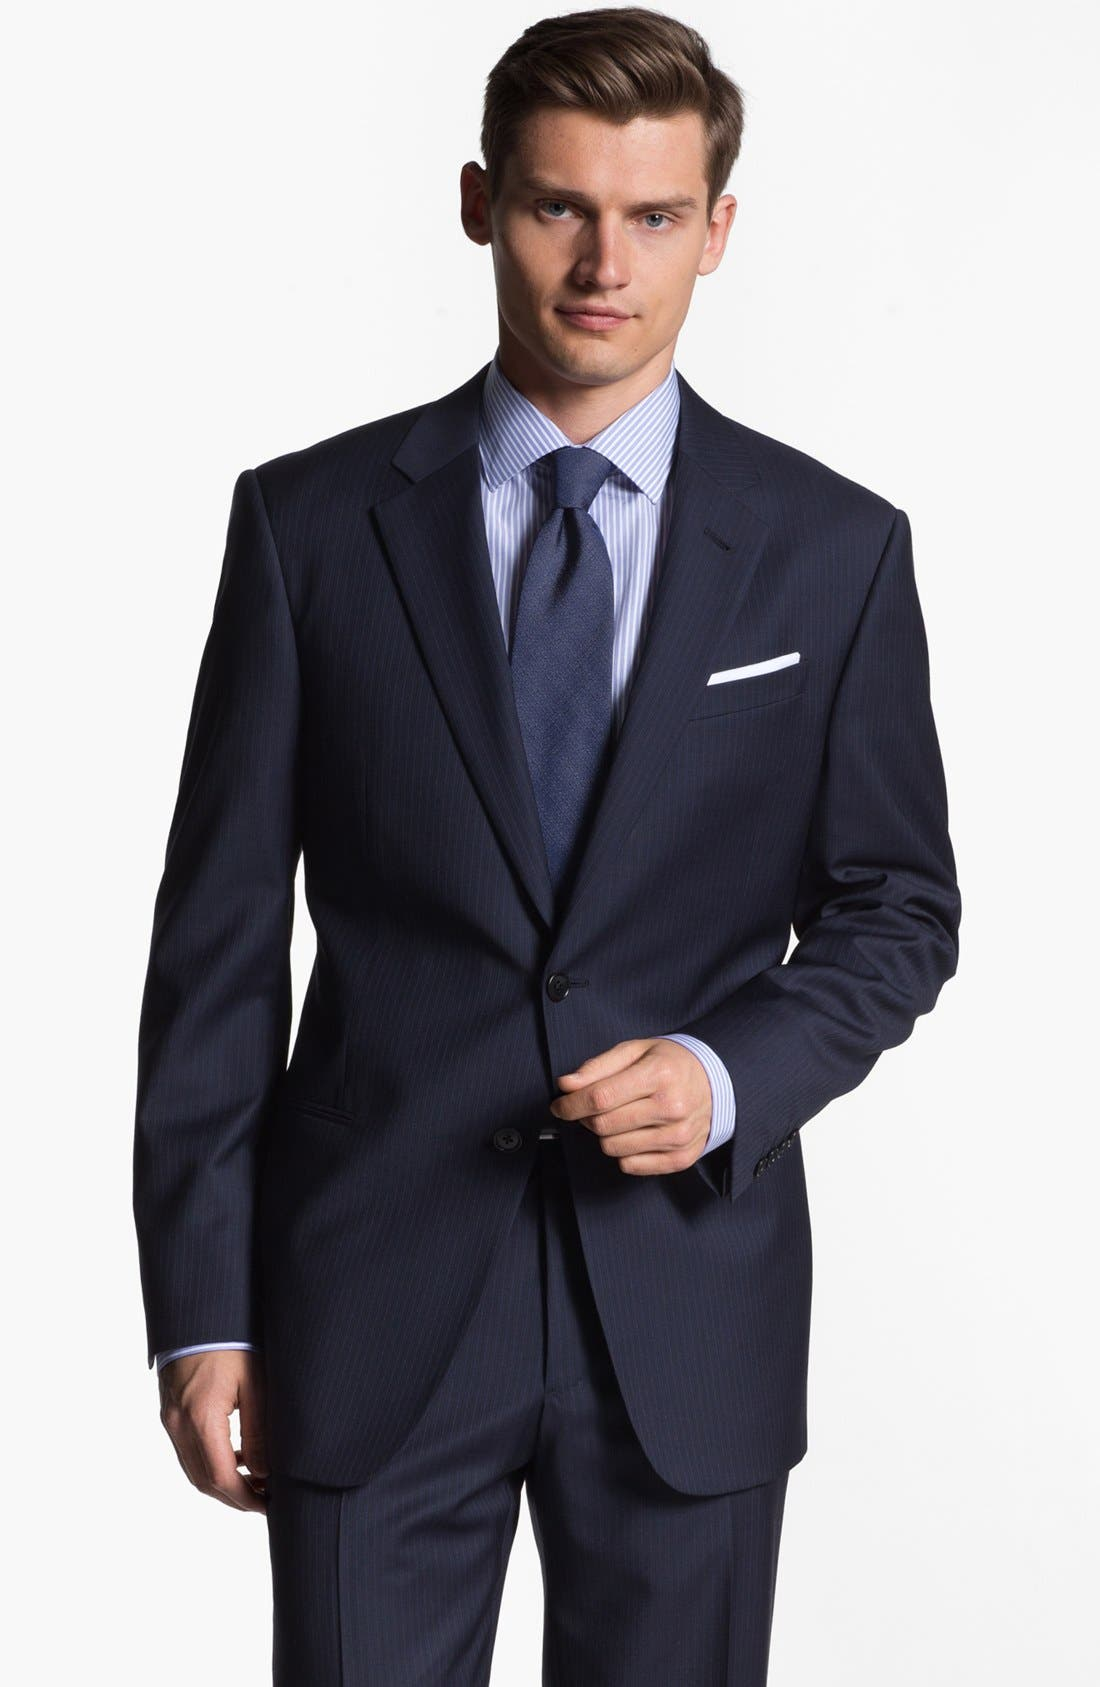 Alternate Image 1 Selected - Armani Collezioni 'Giorgio' Chalk Stripe Wool Suit